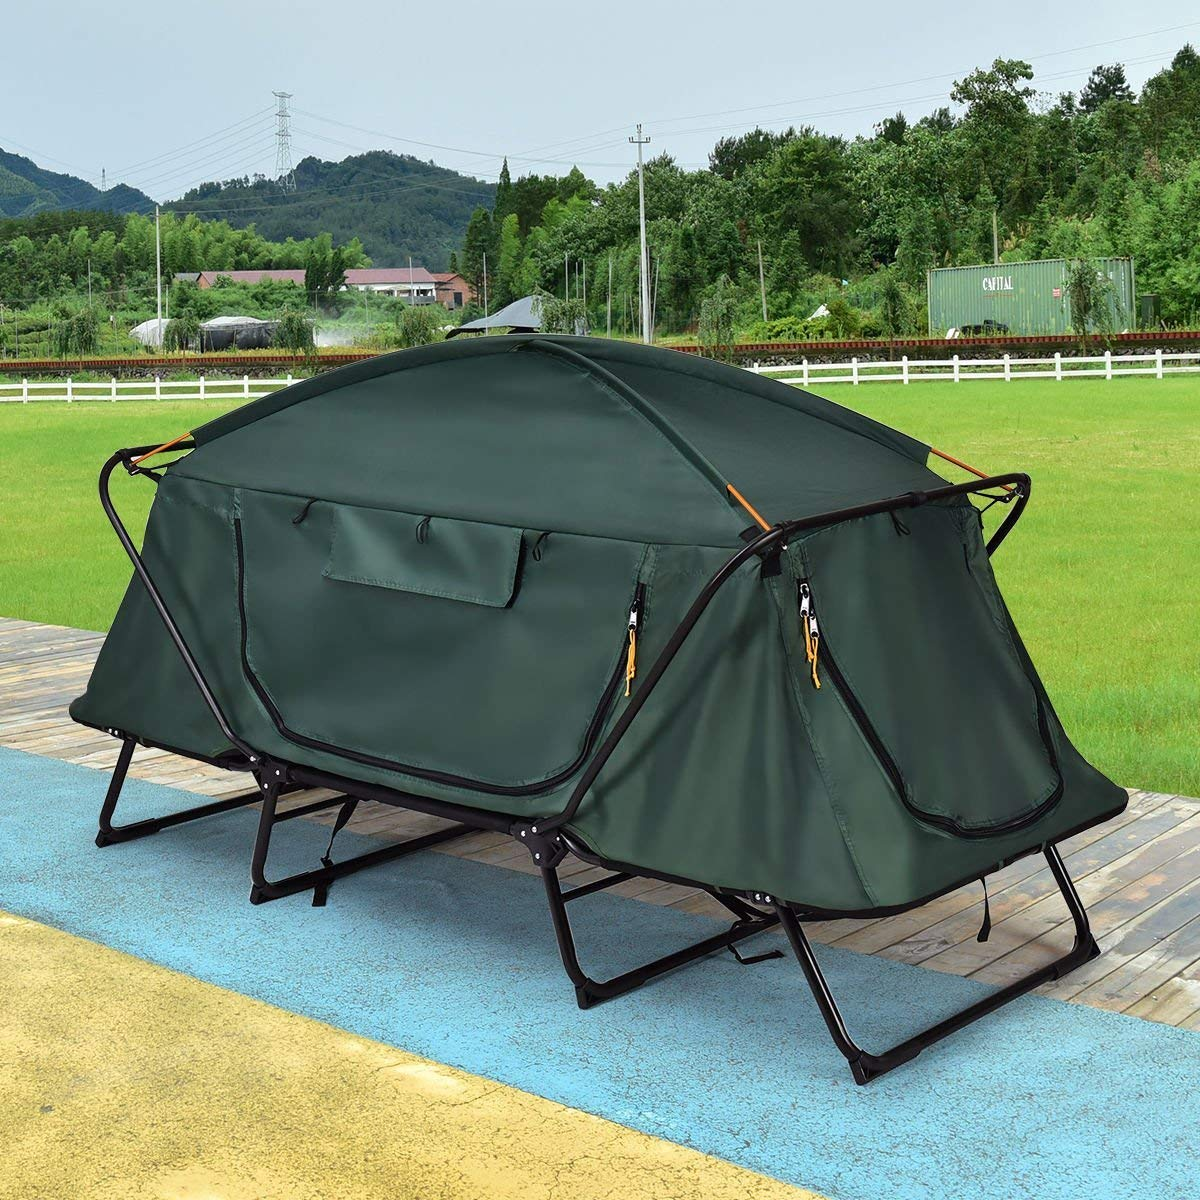 Top 10 Best Cot Tents in 2020 Reviews | Camping Cot Tents